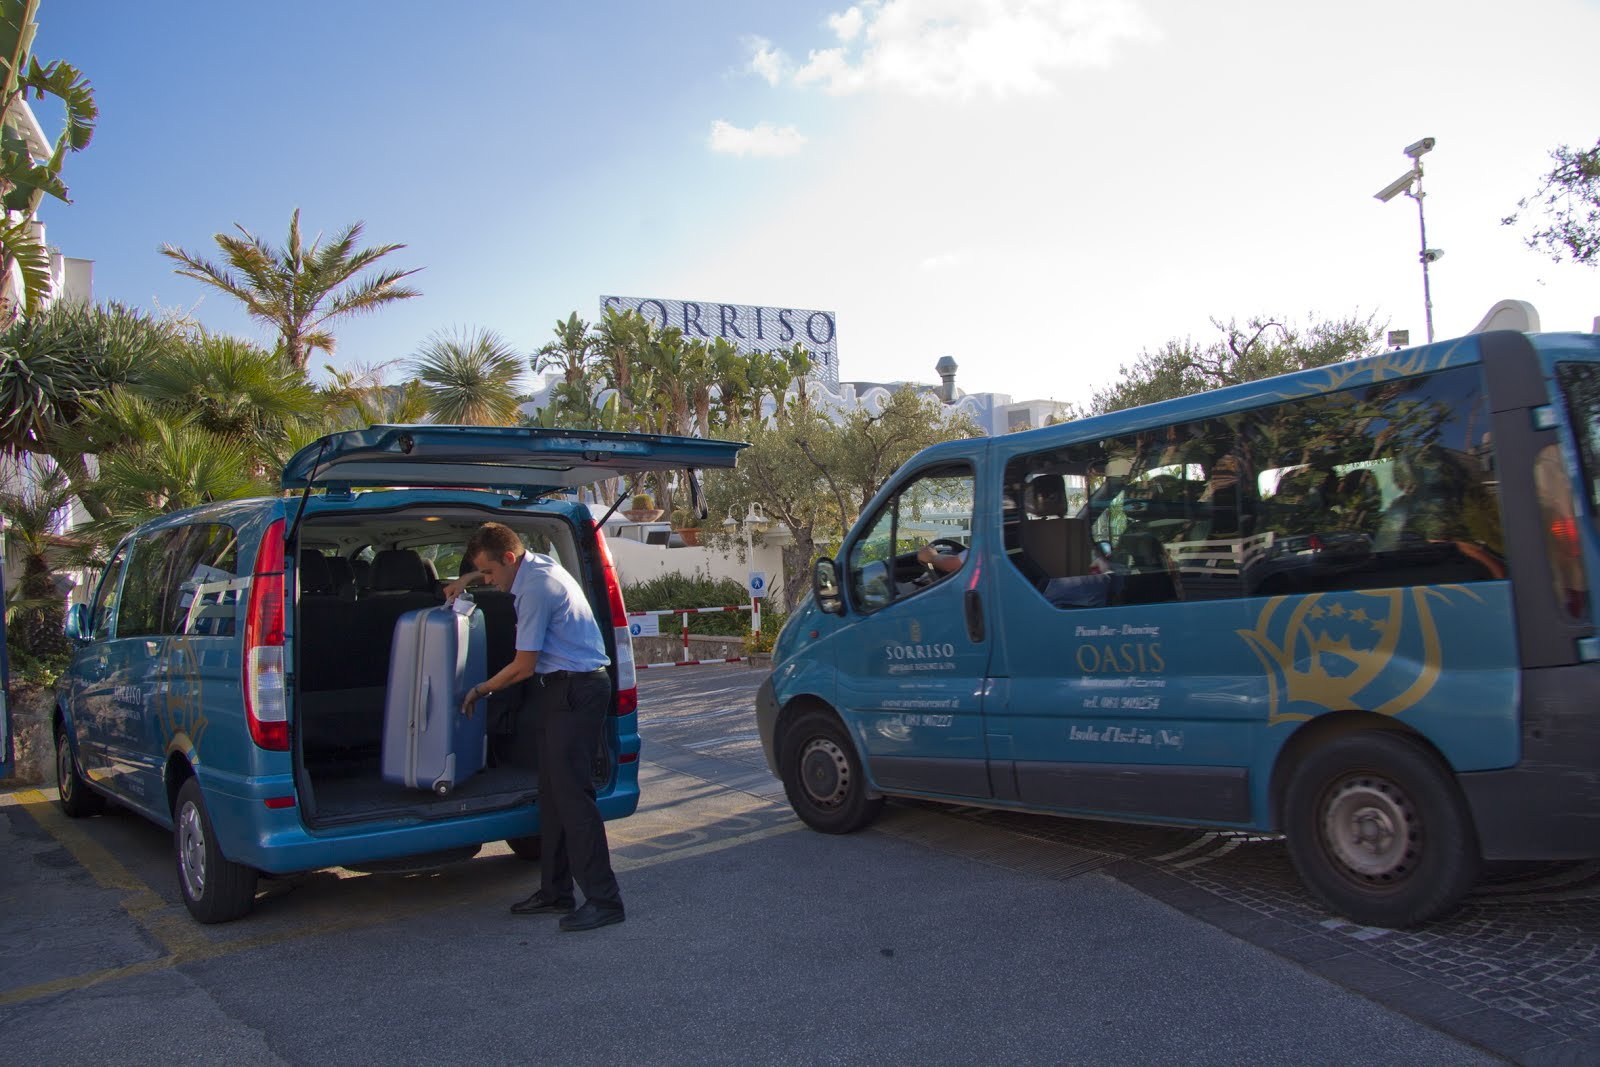 Servizi Sorriso Resort - Shuttle Bus